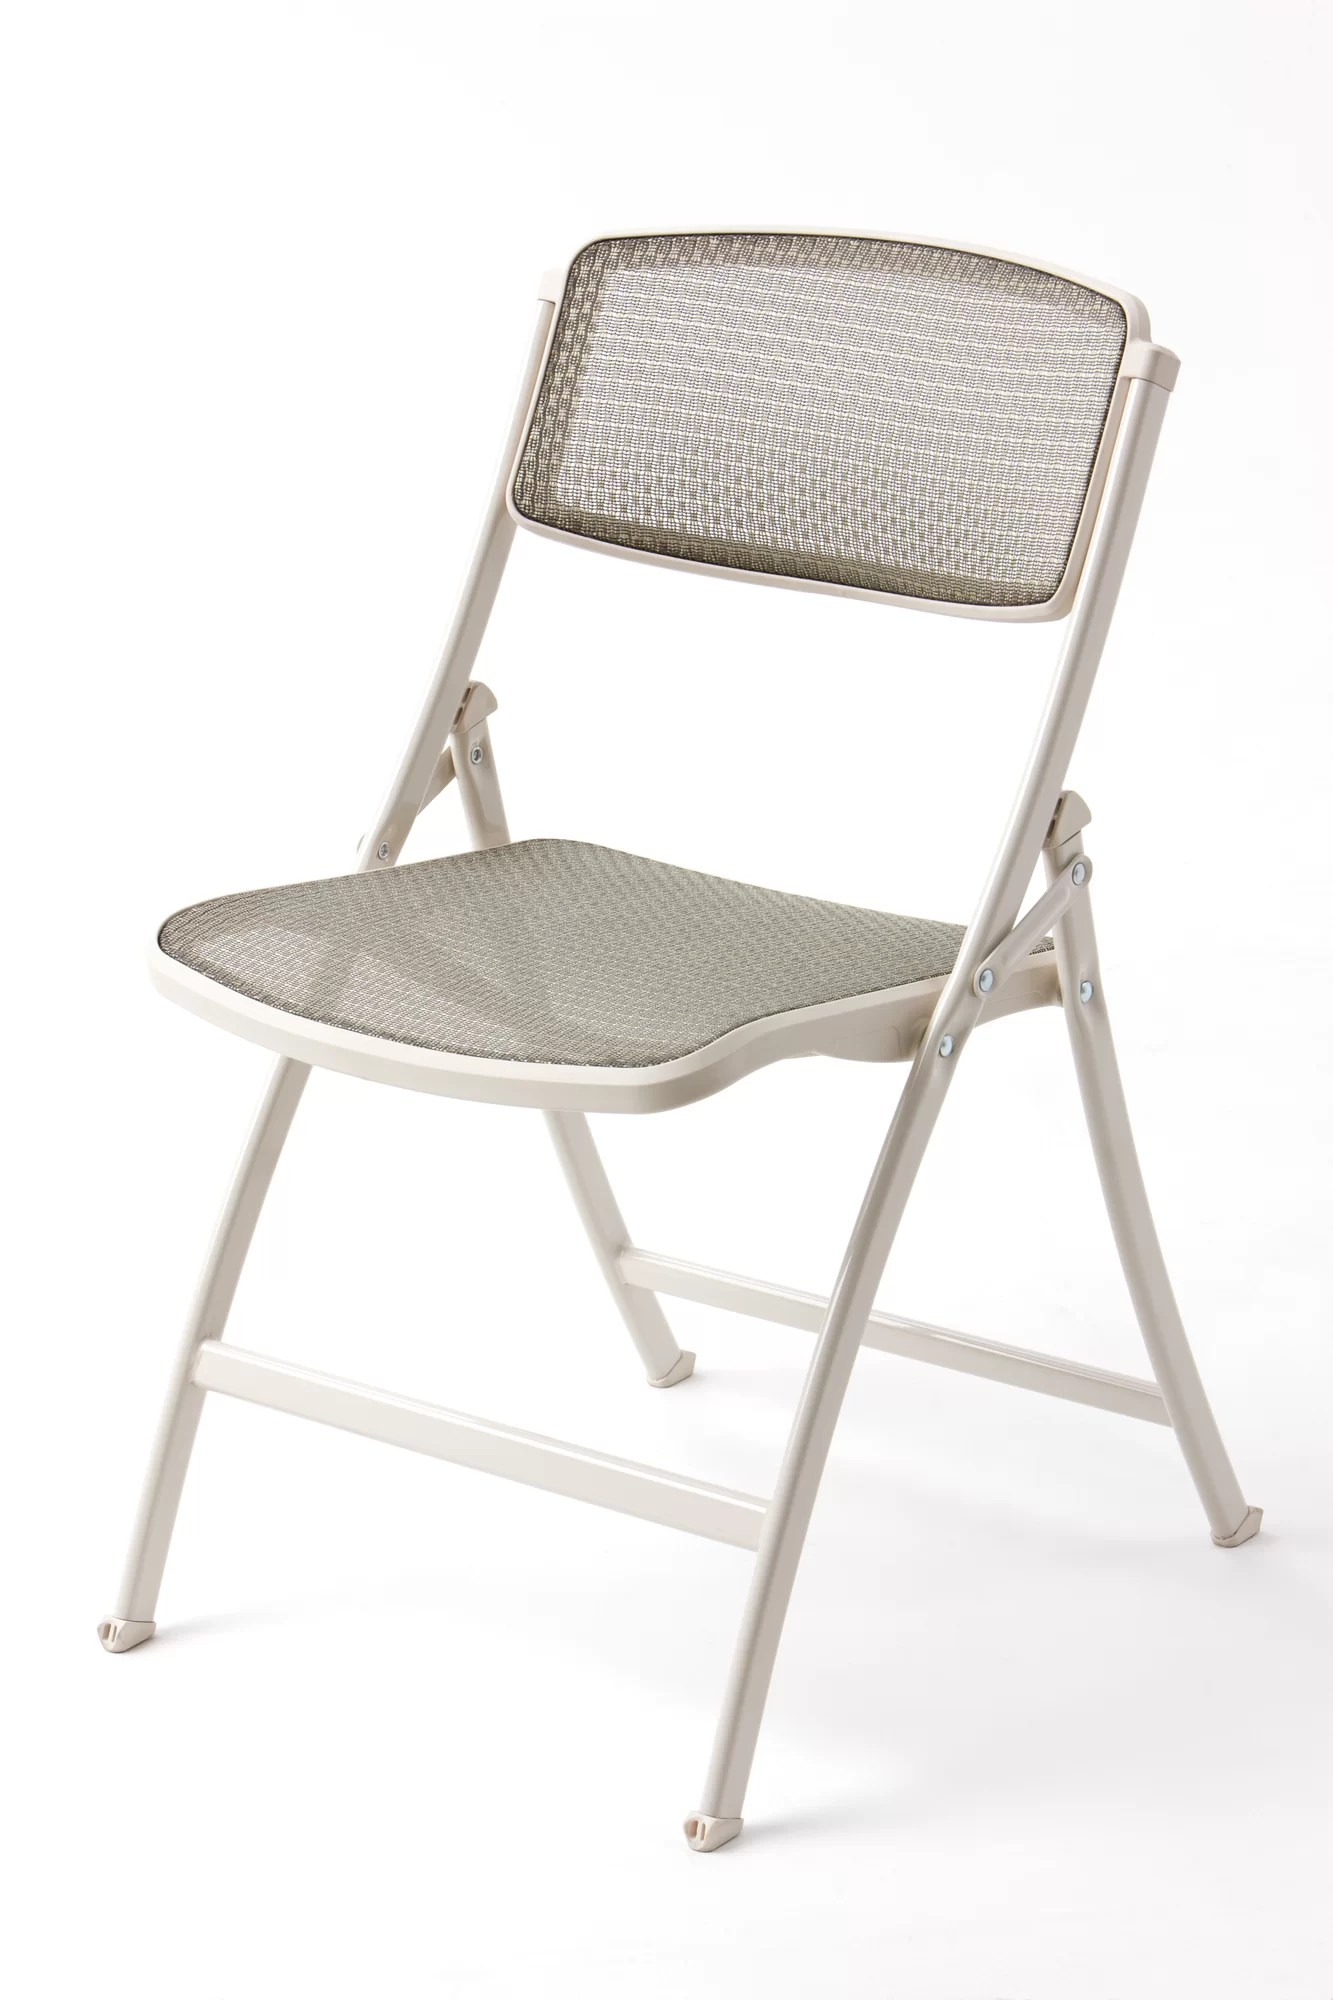 Mity Lite Armless Folding Chair Set of 4  eBay